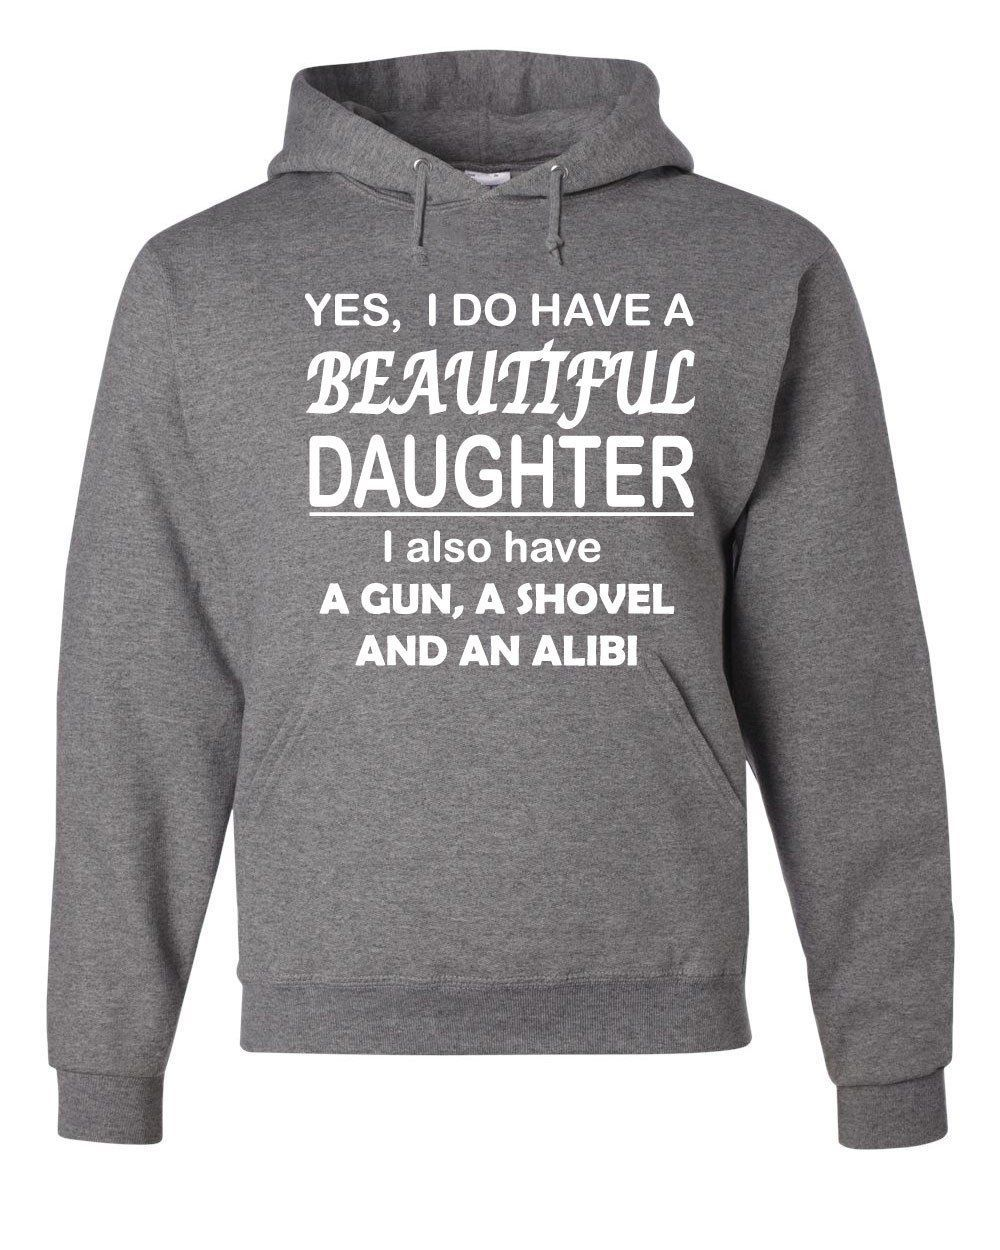 I Do Have A Beautiful Daughter Hoodie Funny Dad Father Sweatshirt Funny Hoodies Funny Dad Shirts Father Sweatshirt [ 1250 x 1000 Pixel ]